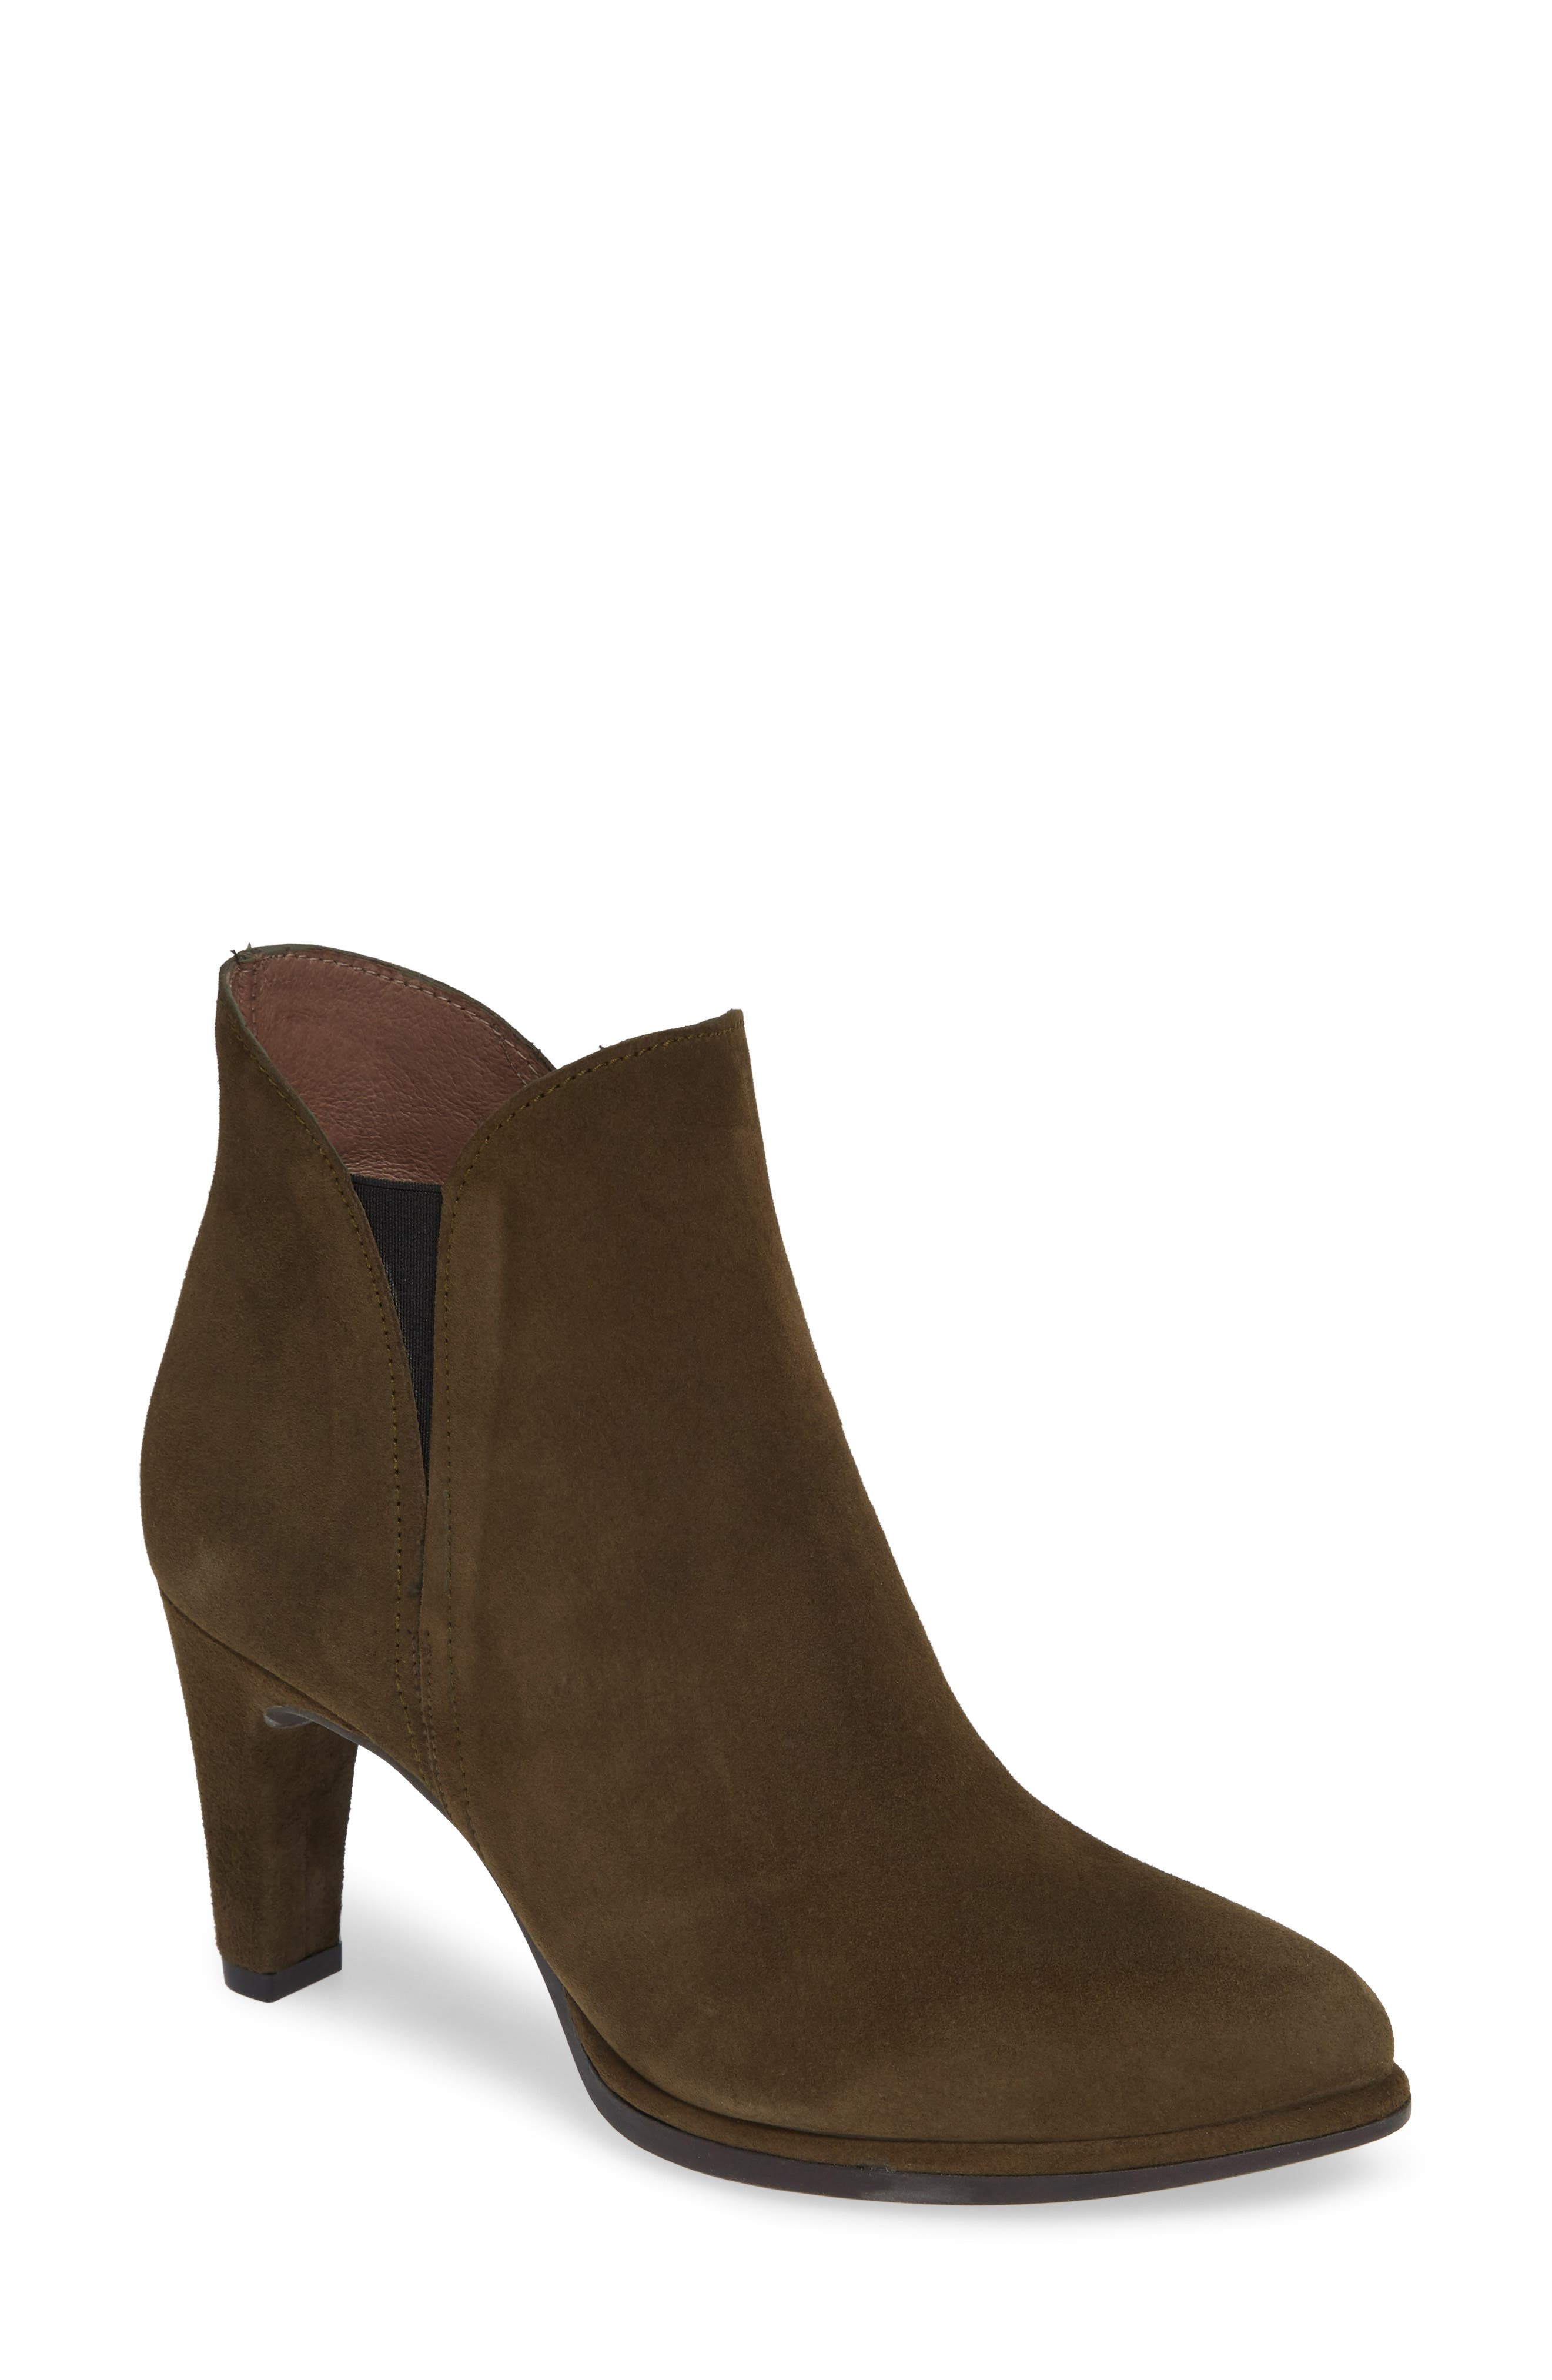 Chelsea Boot,                             Main thumbnail 1, color,                             MILITARY GREEN SUEDE